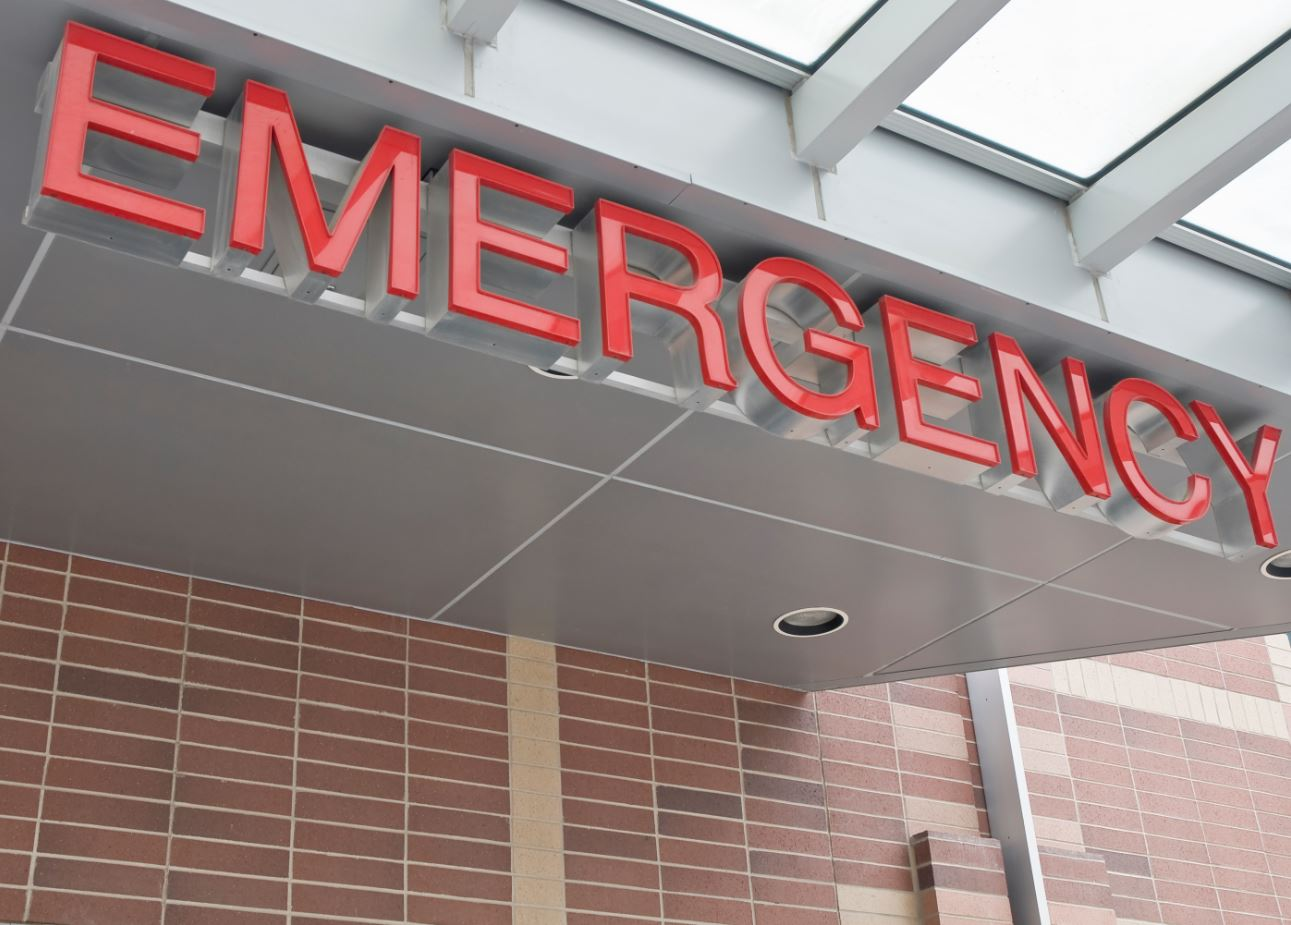 Not all fevers need emergency care: doctor